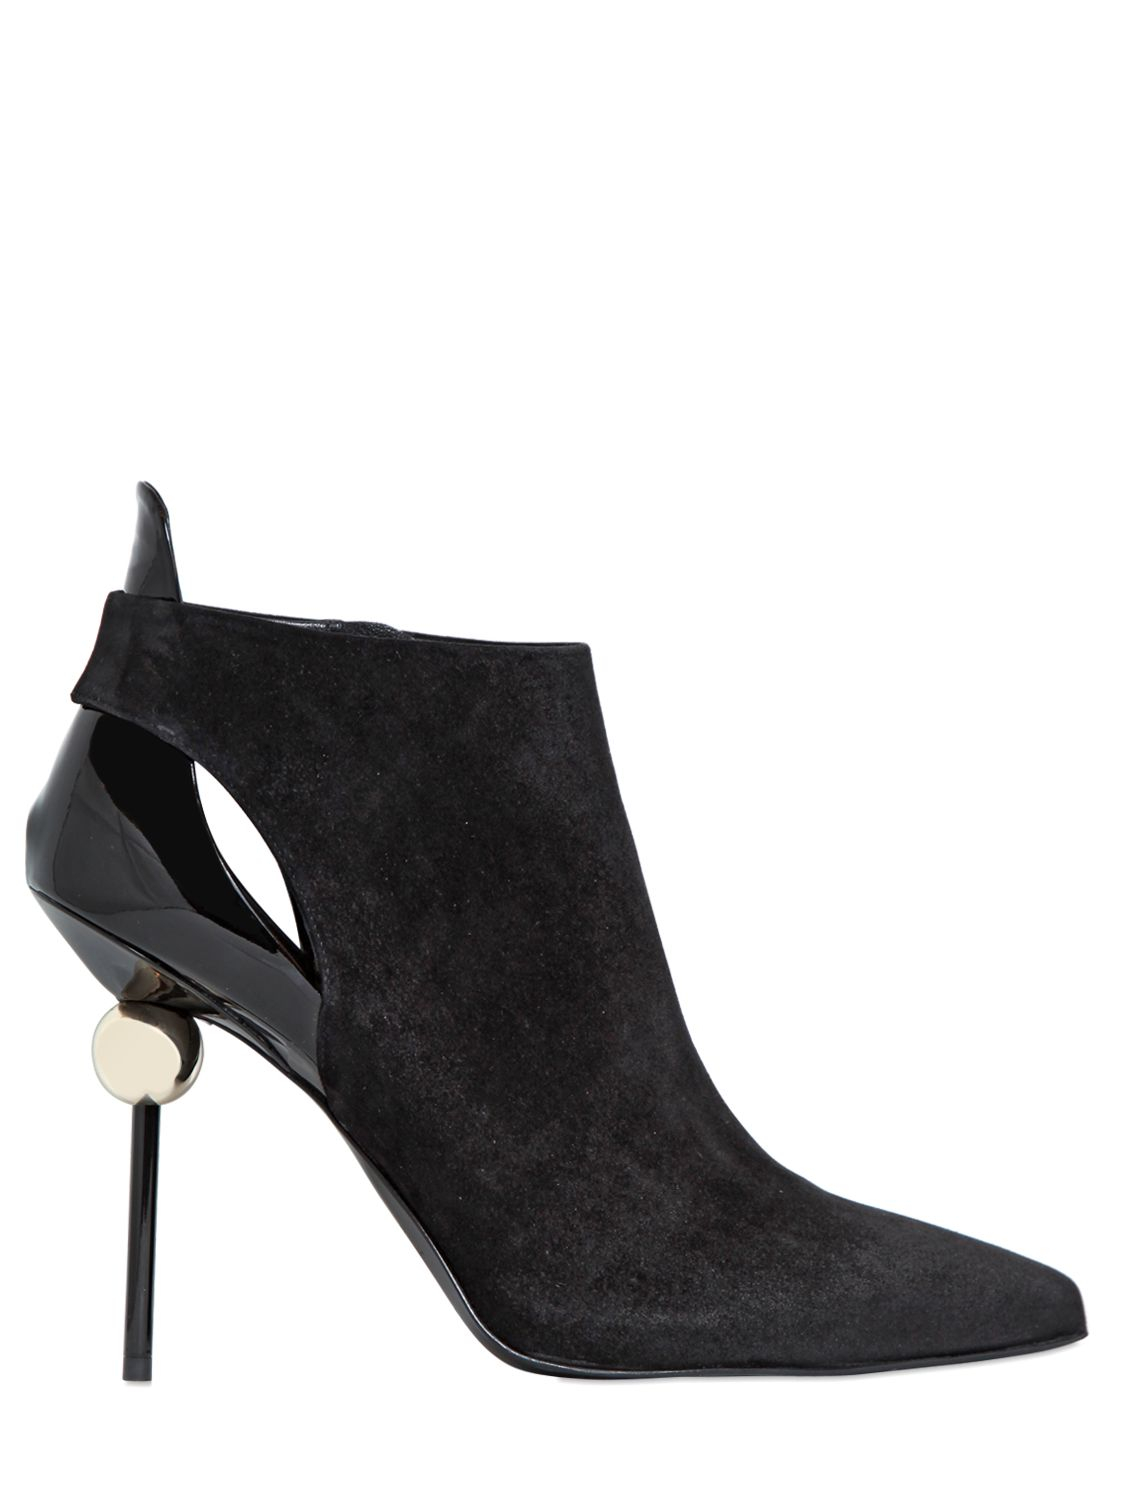 Lyst Roger Vivier 110mm Sphere Suede Ankle Boots In Black